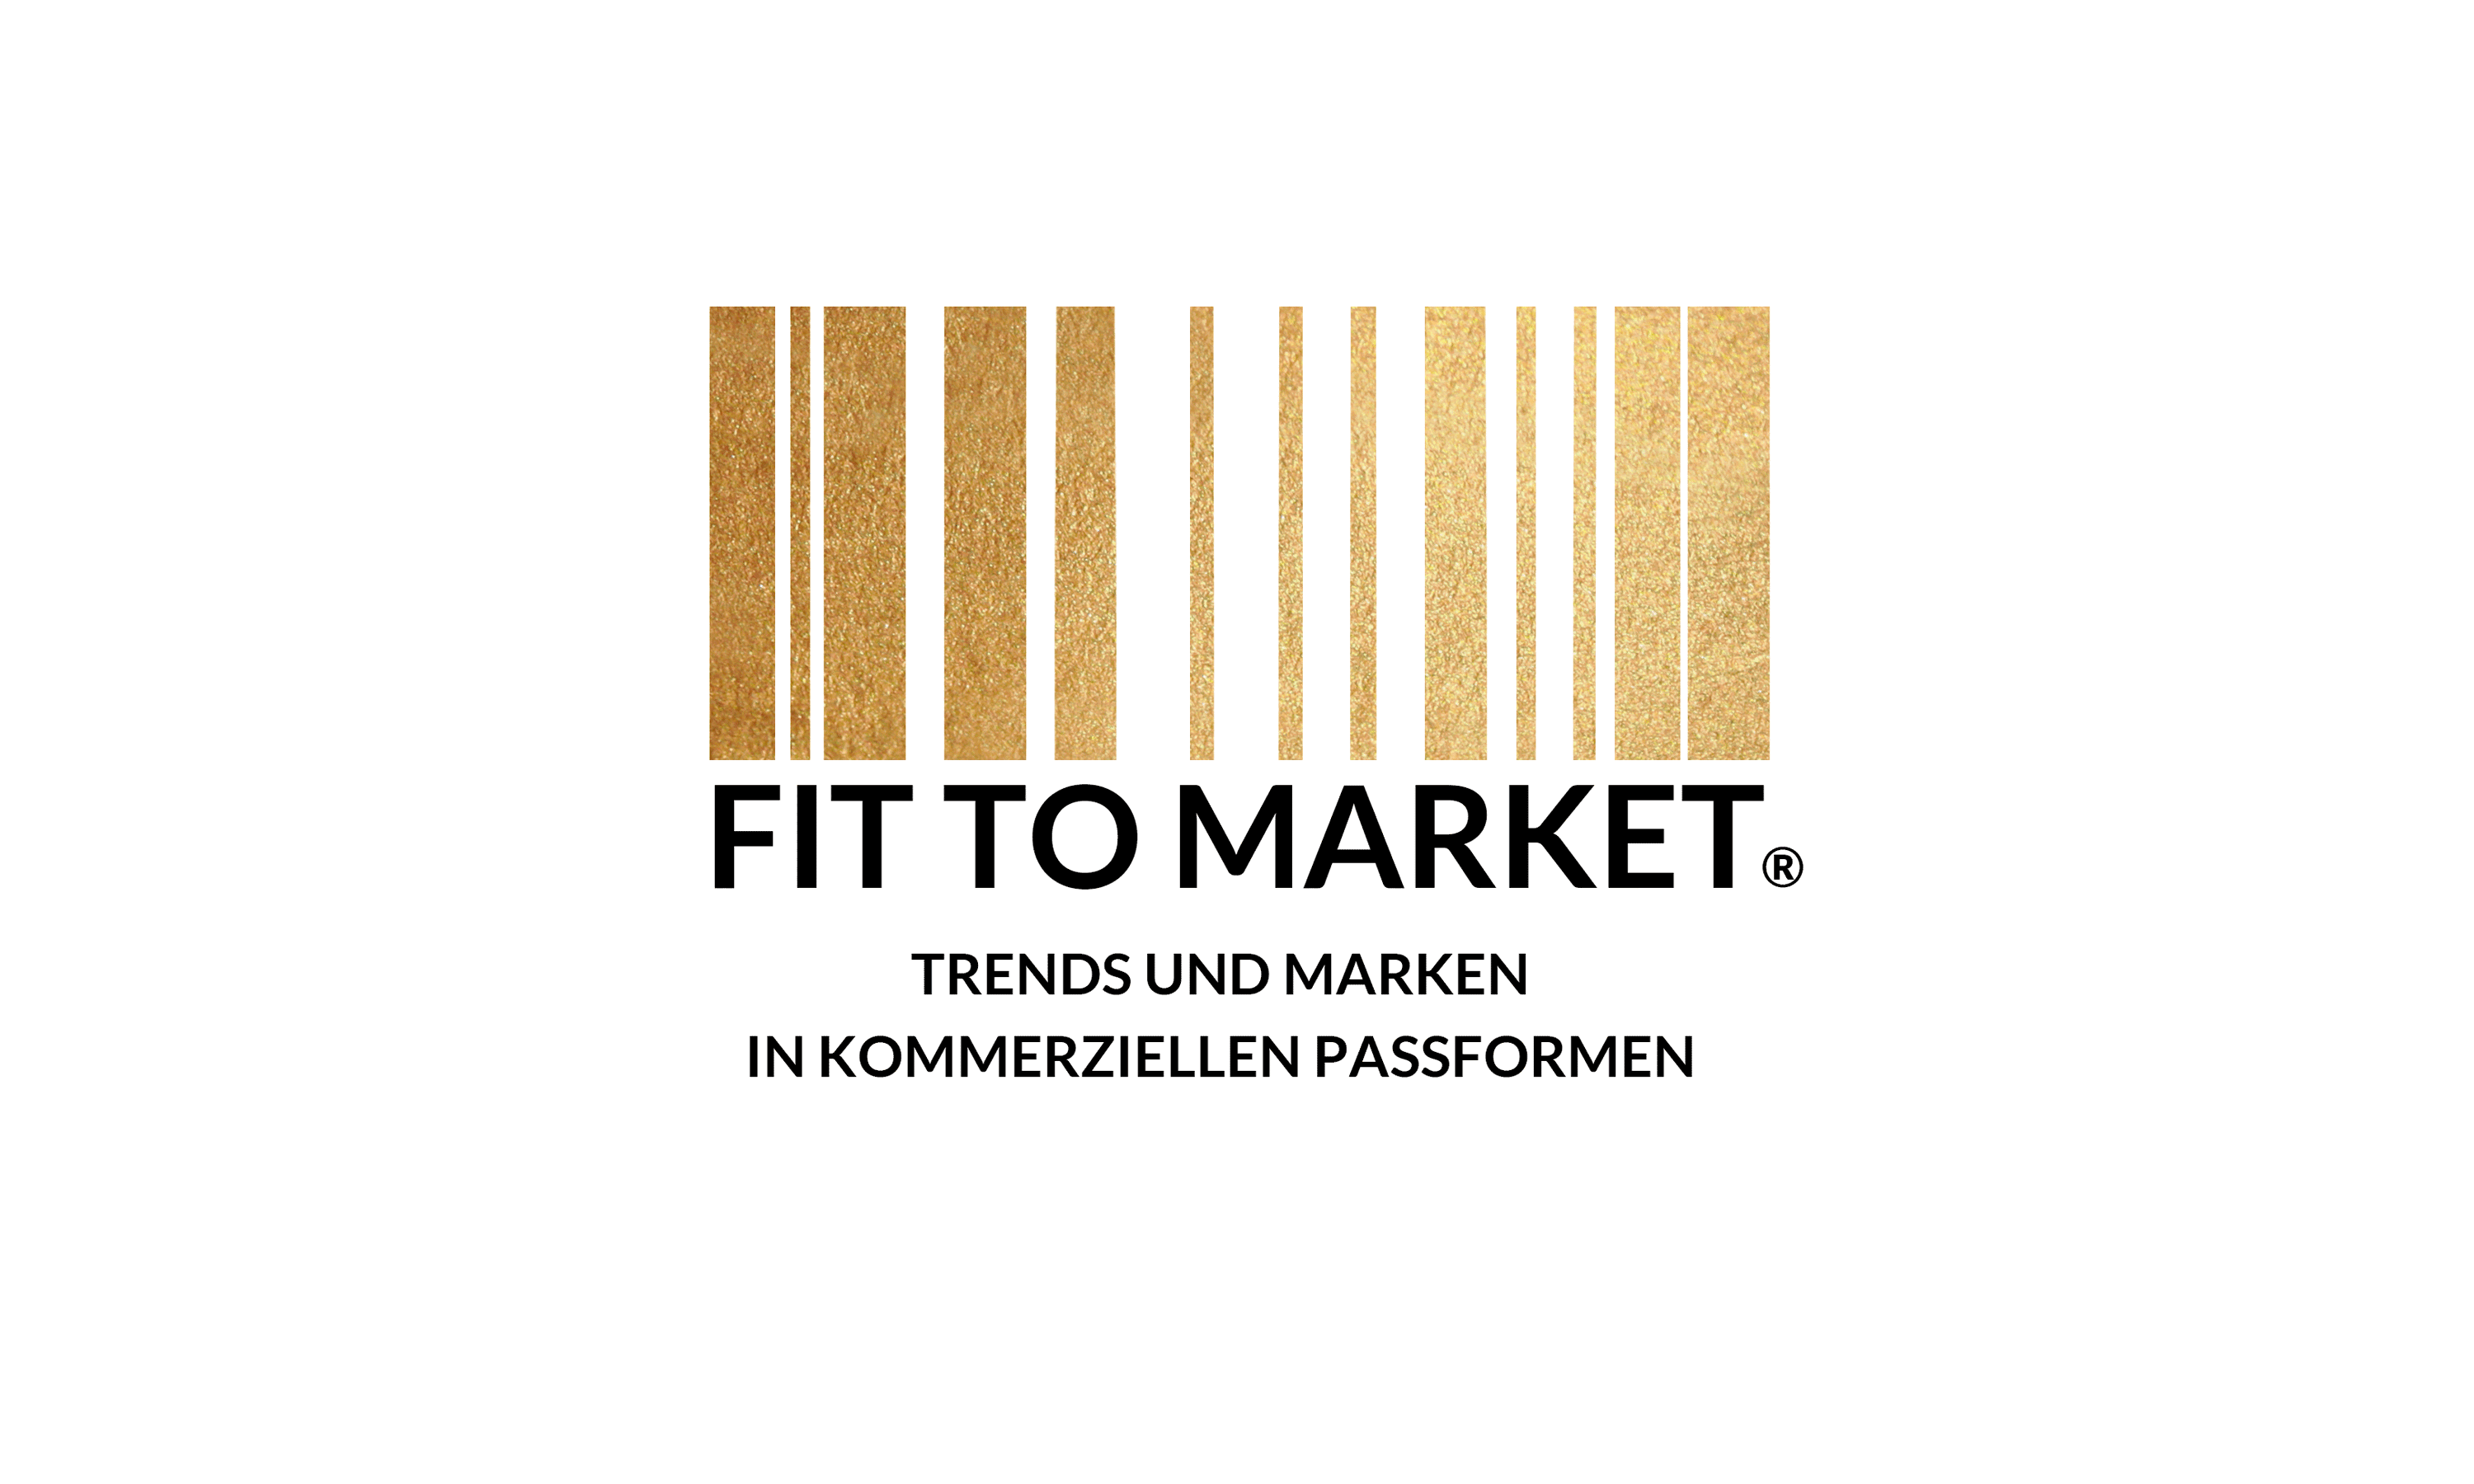 FIT TO MARKET